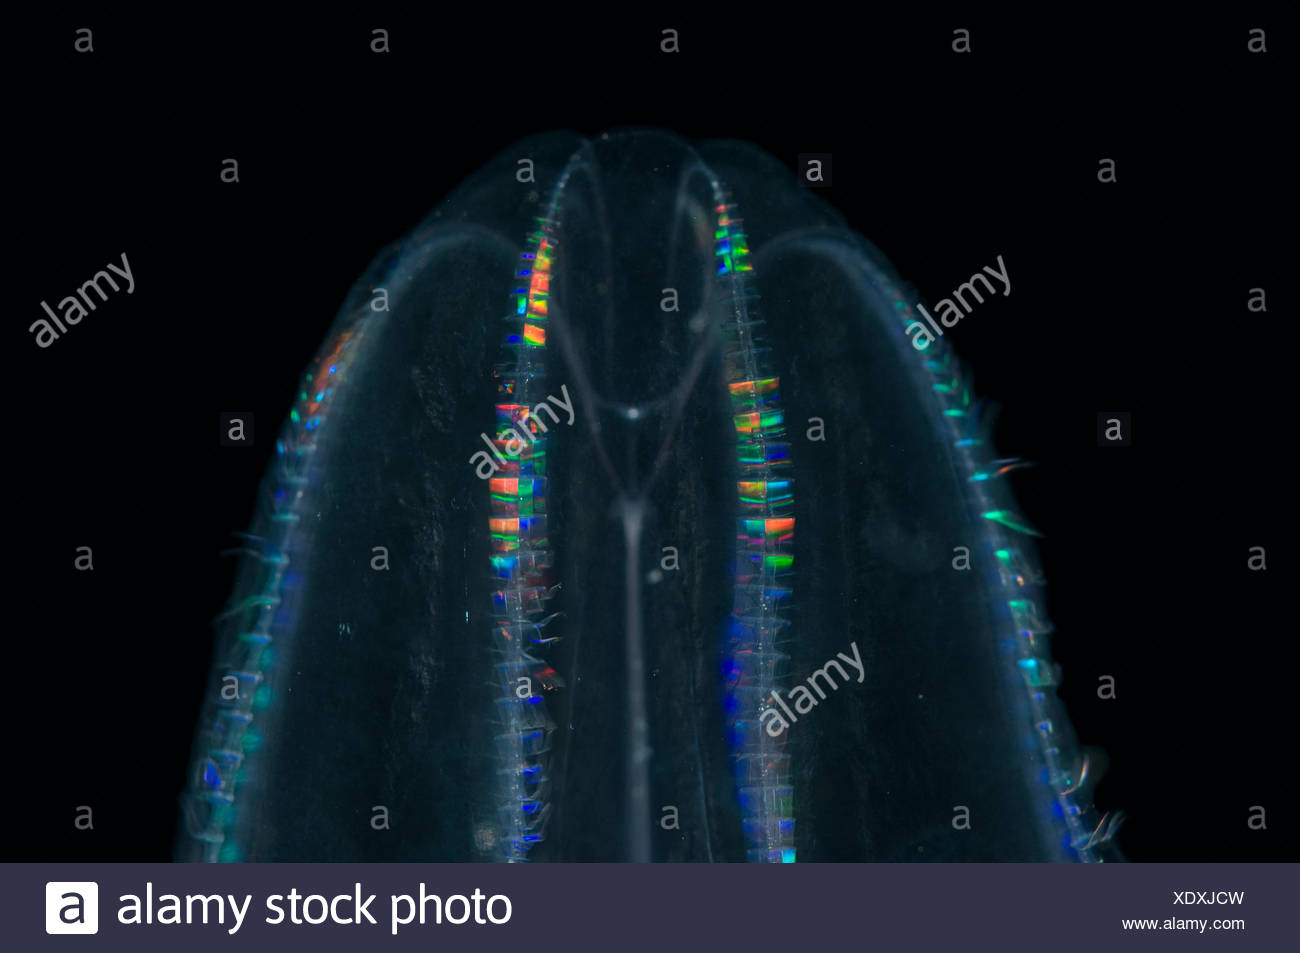 Comb Jelly {Bollinopsis ssp} caught with 1m ring net between 0 and 150m, comb plates, Mid-Atlantic Ridge, North Atlantic Ocean - Stock Image